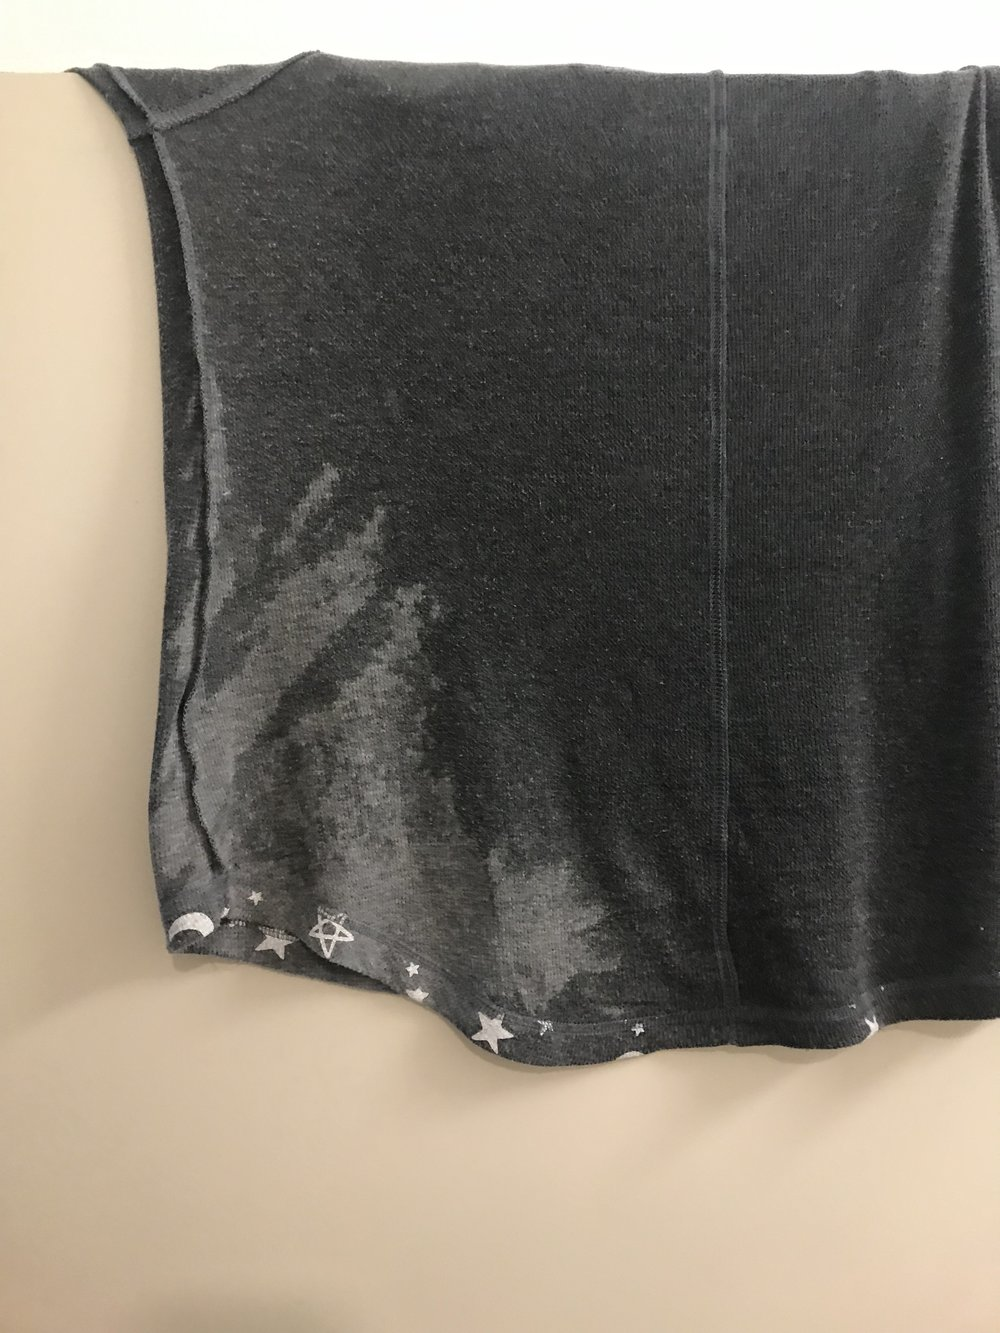 This was my top after my first session! Wet with sweat.